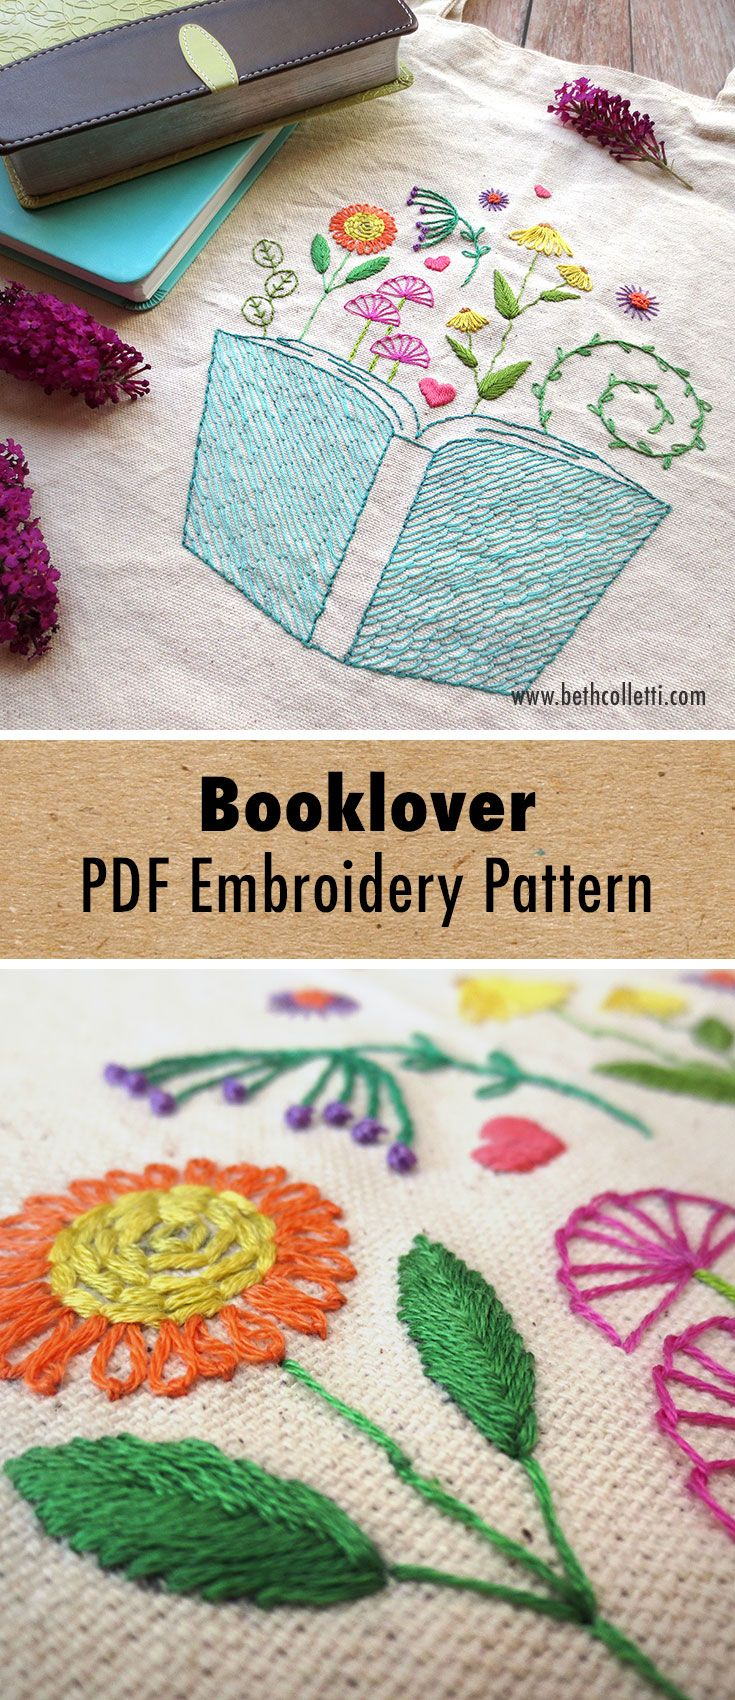 Book / Booklover Embroidery Pattern   Embroidery book, Embroidery ...